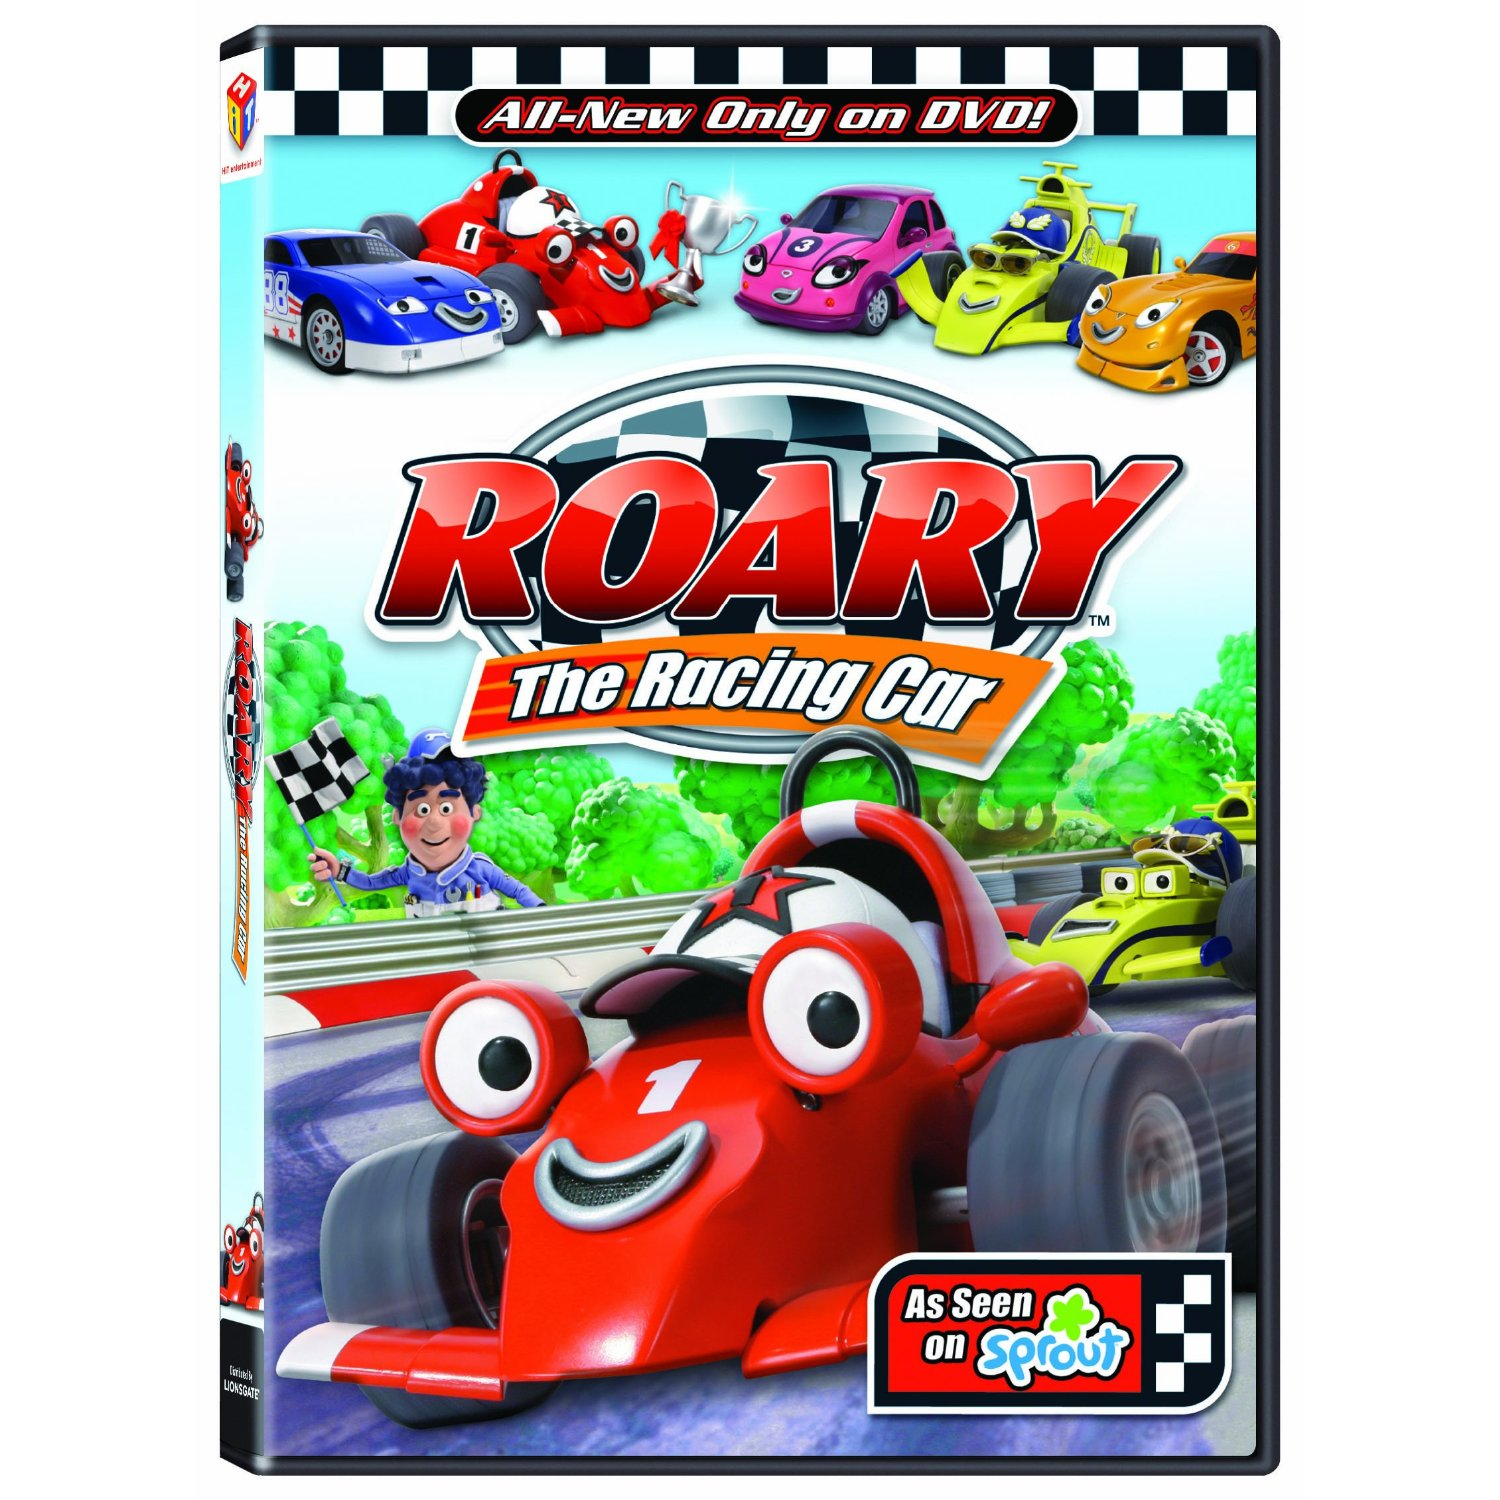 jam movie reviews natalia from htz reviews roary the